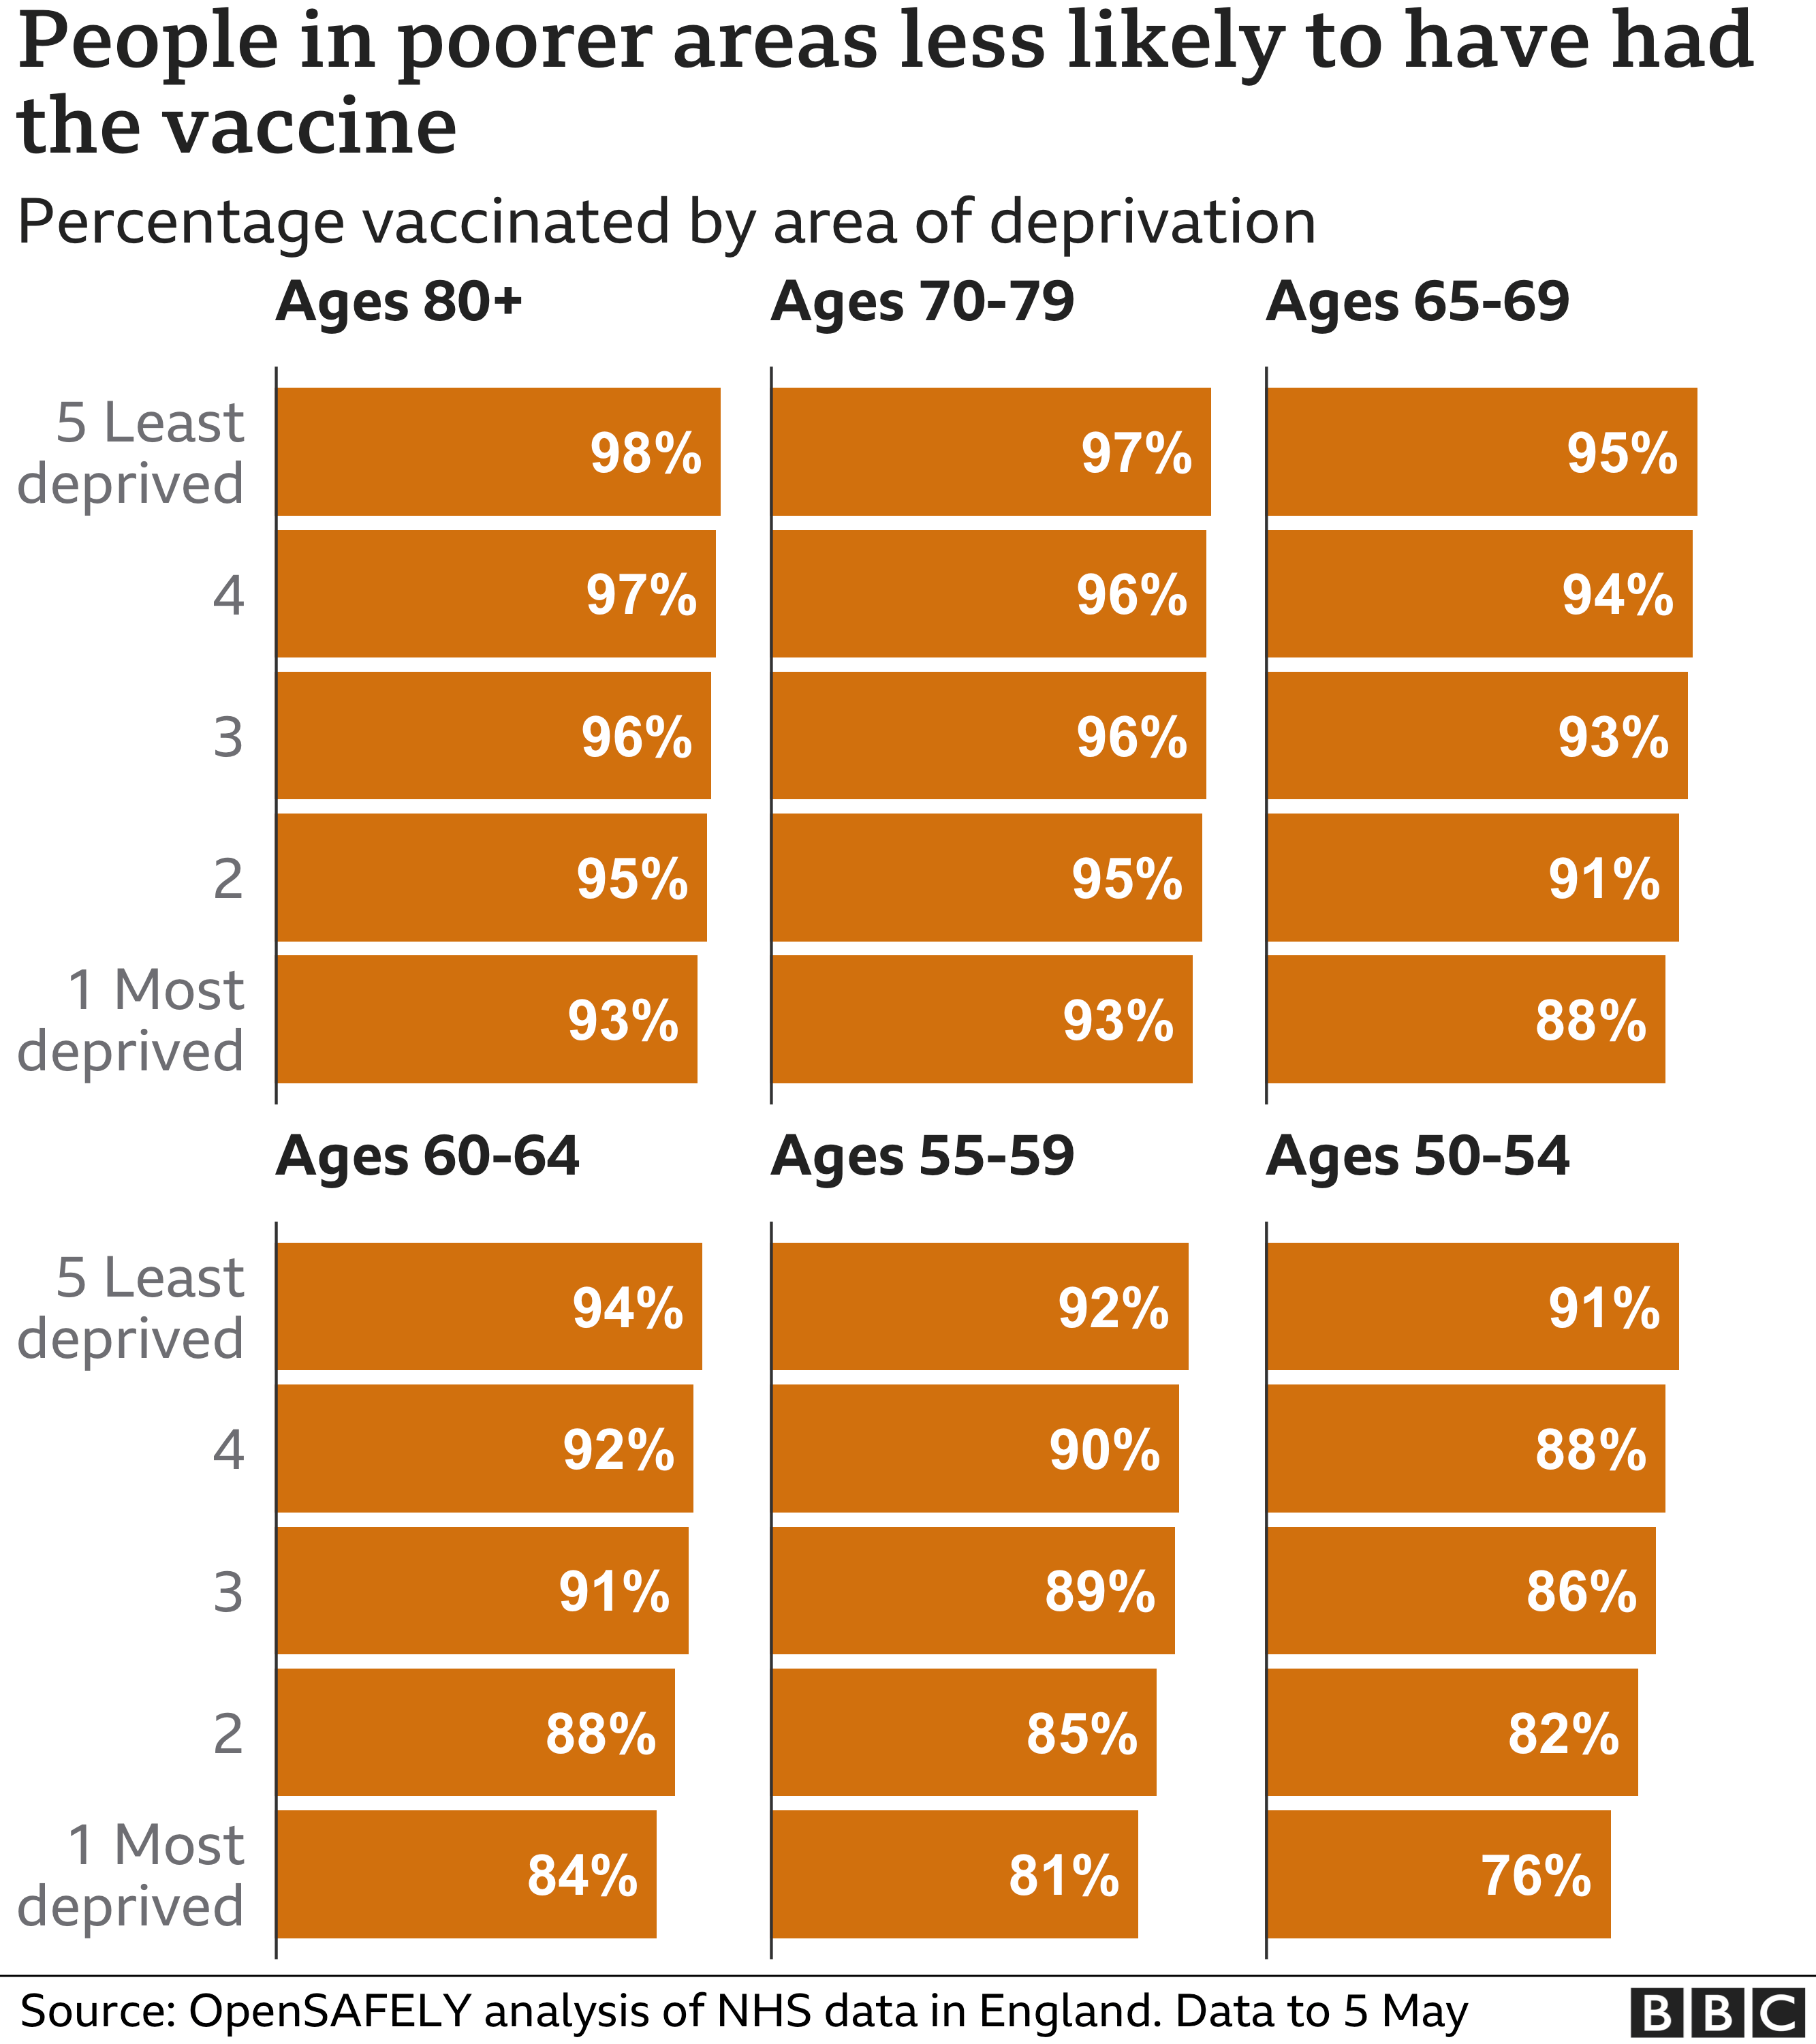 Chart showing people in poorer areas are less likely to have had a vaccine. updated 14 May.